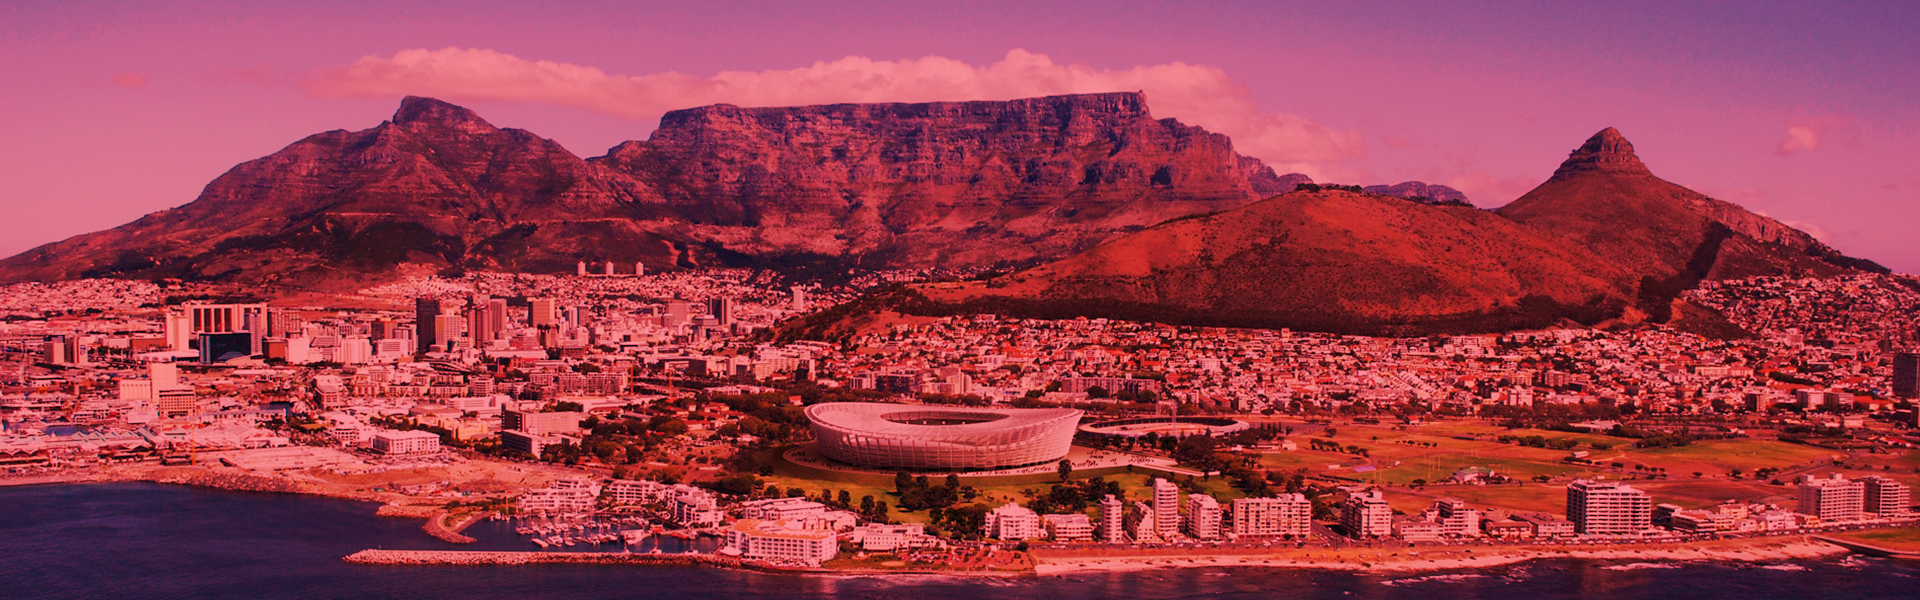 Cape-Town-yearend-venues